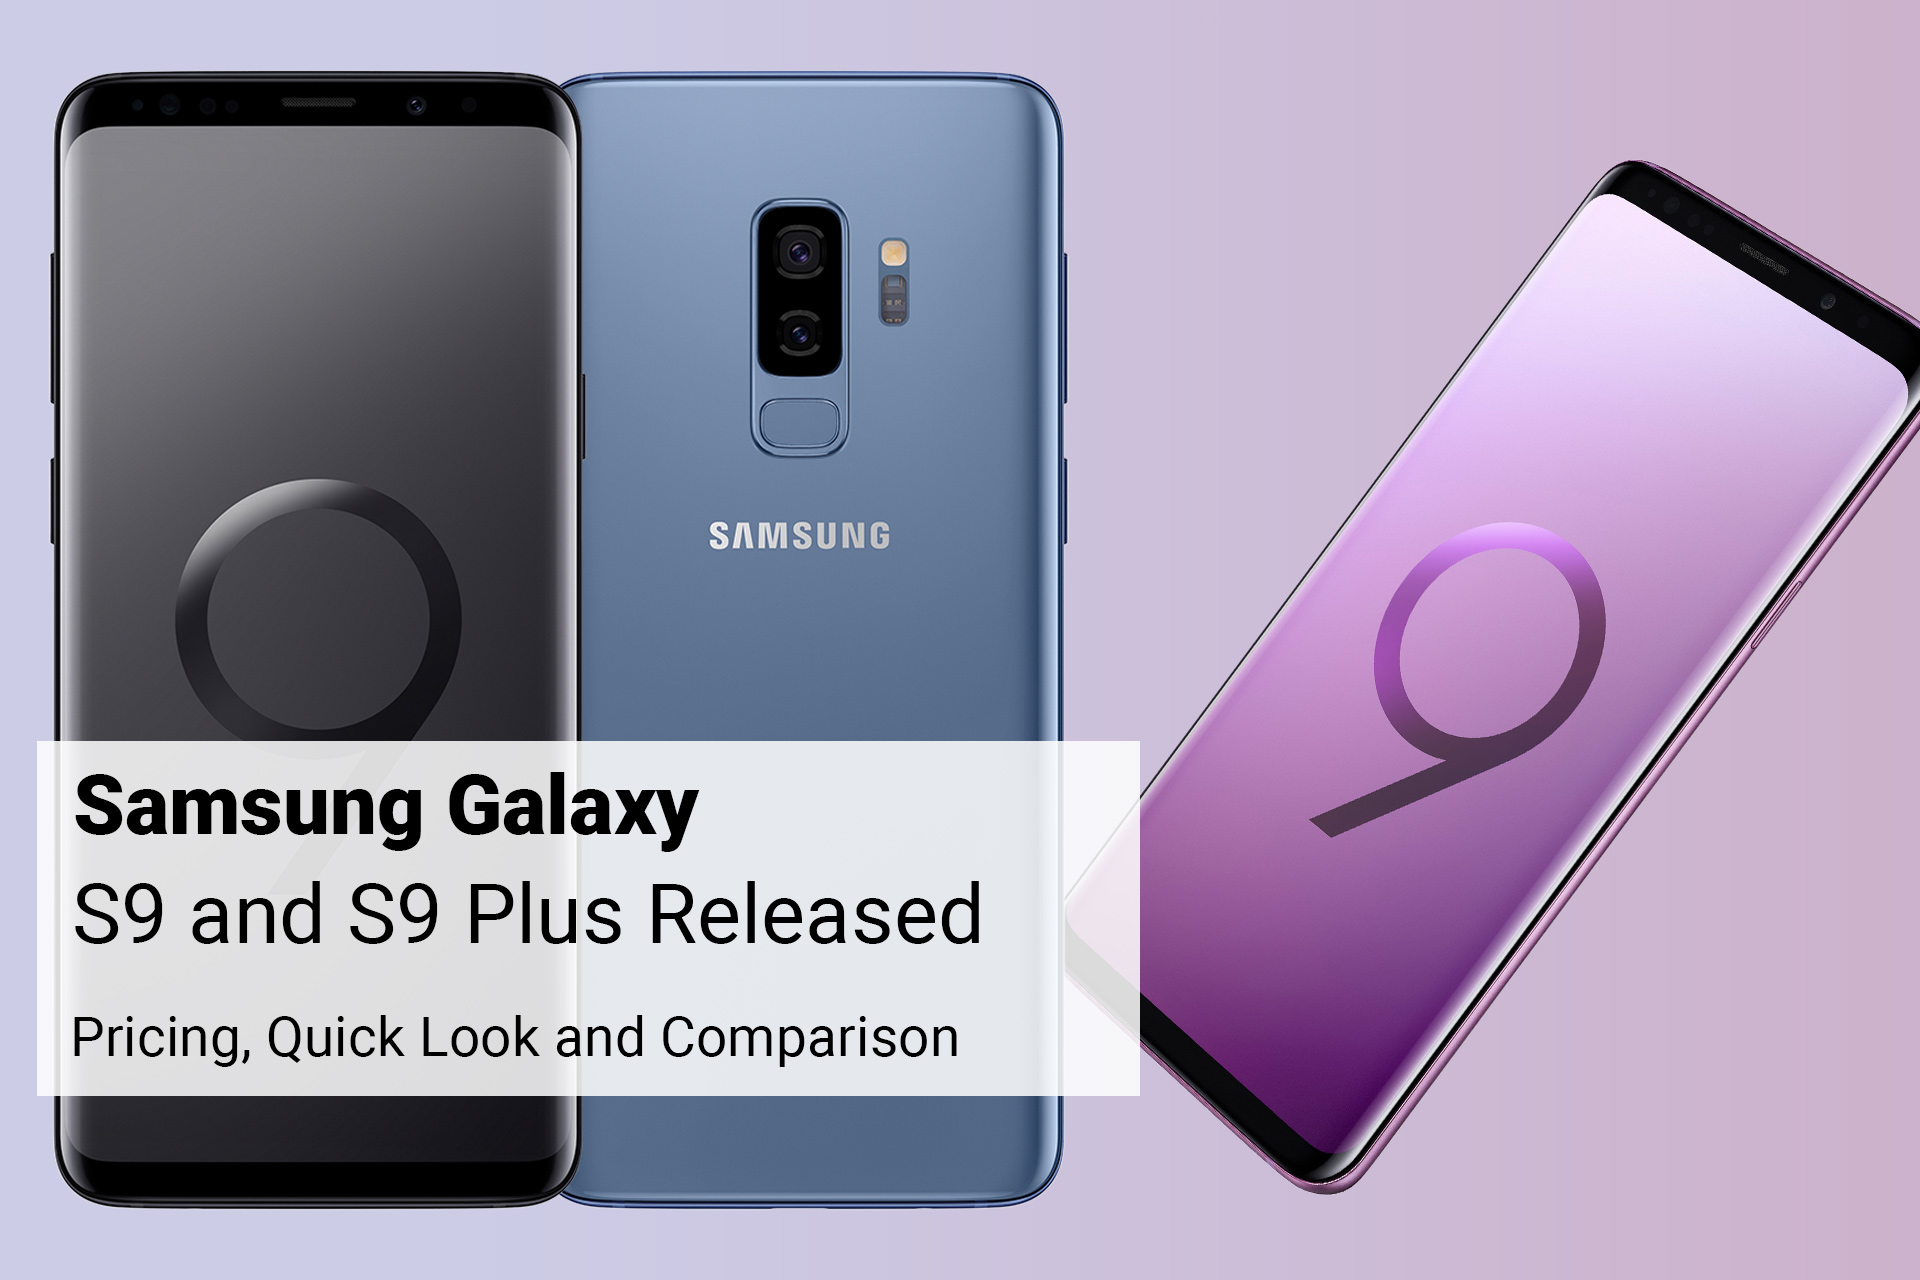 Samsung Galaxy S9 and S9 Plus Released - Pricing, Quick Look and Comparison featured image